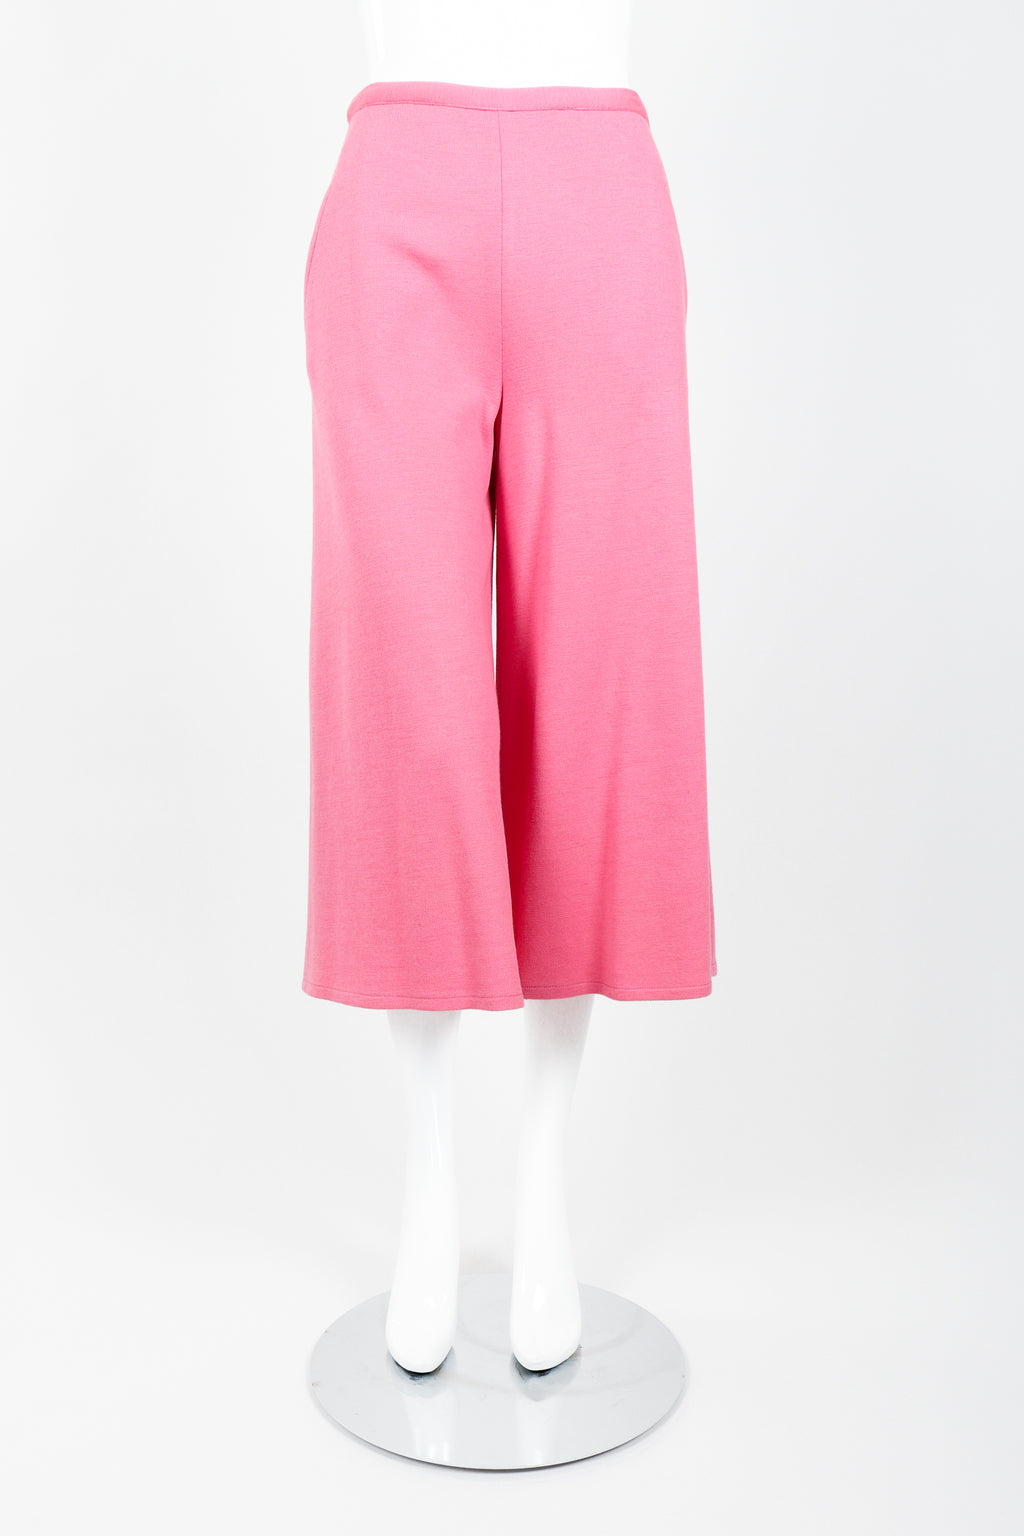 Vintage Sonia Rykiel Pink Knit Gaucho Pant on Mannequin Front at Recess Los Angeles